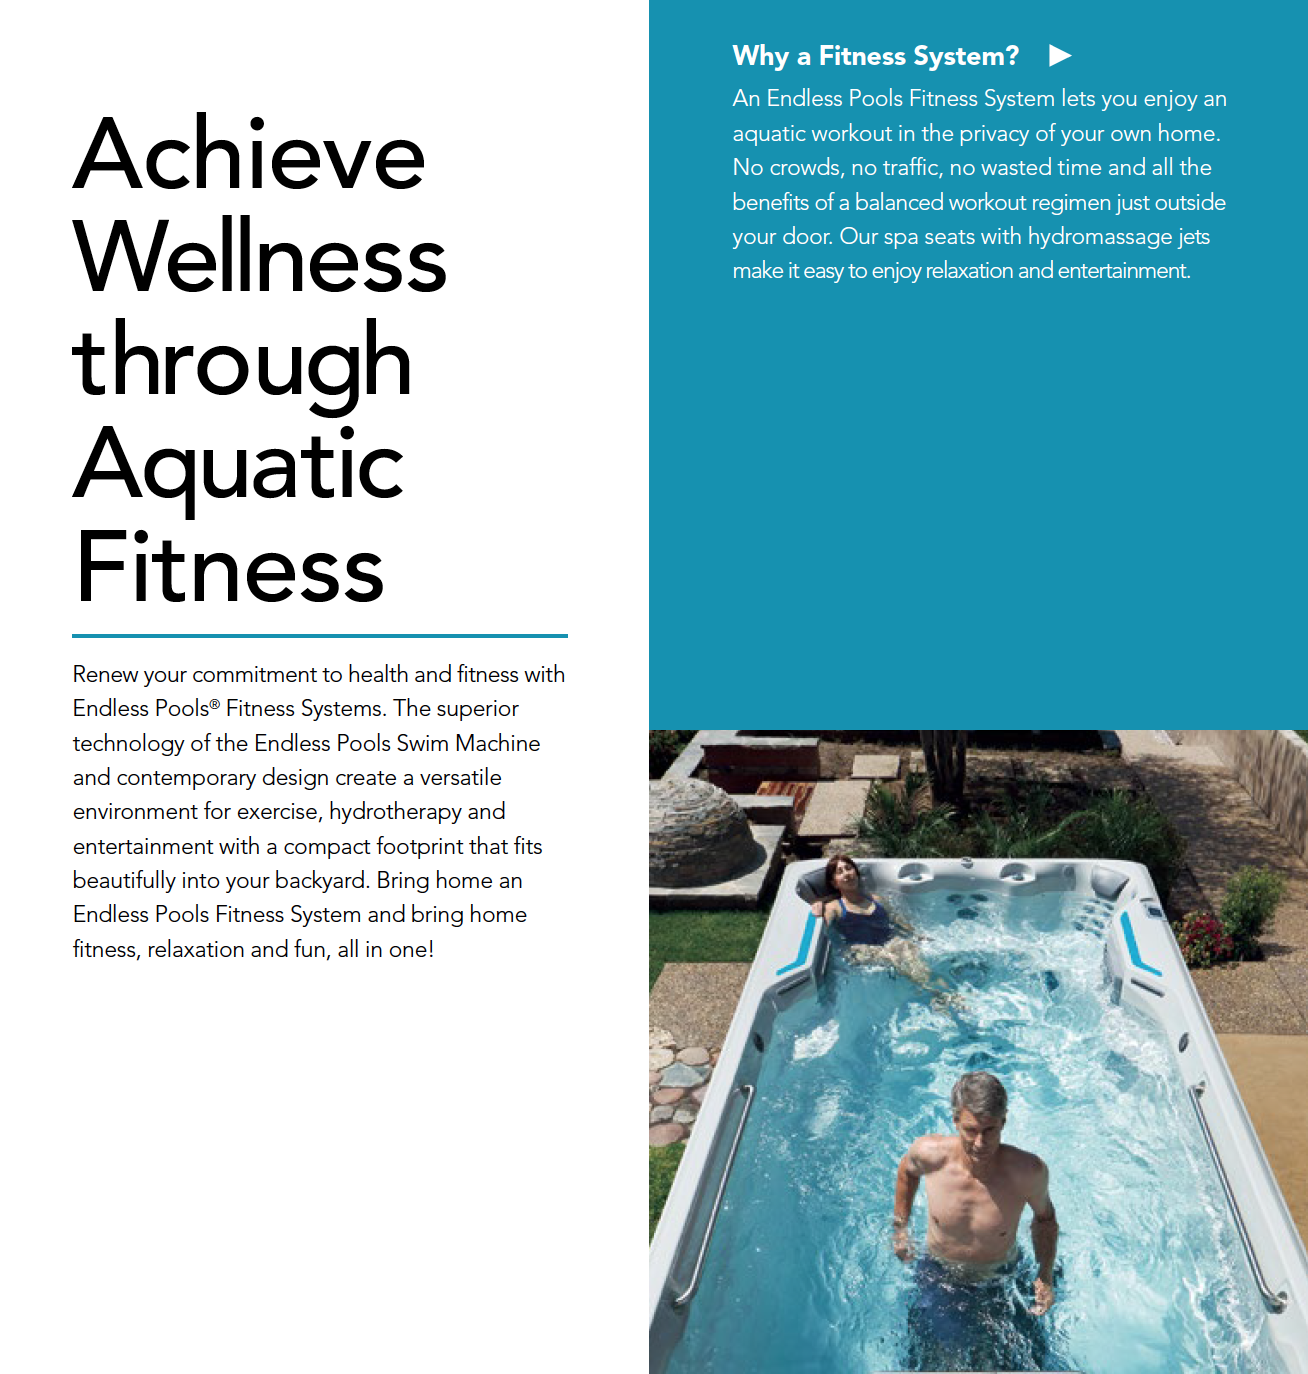 swim-spa-nz-endless-pools-2020-04-18-at-9.55.06-am-20.png